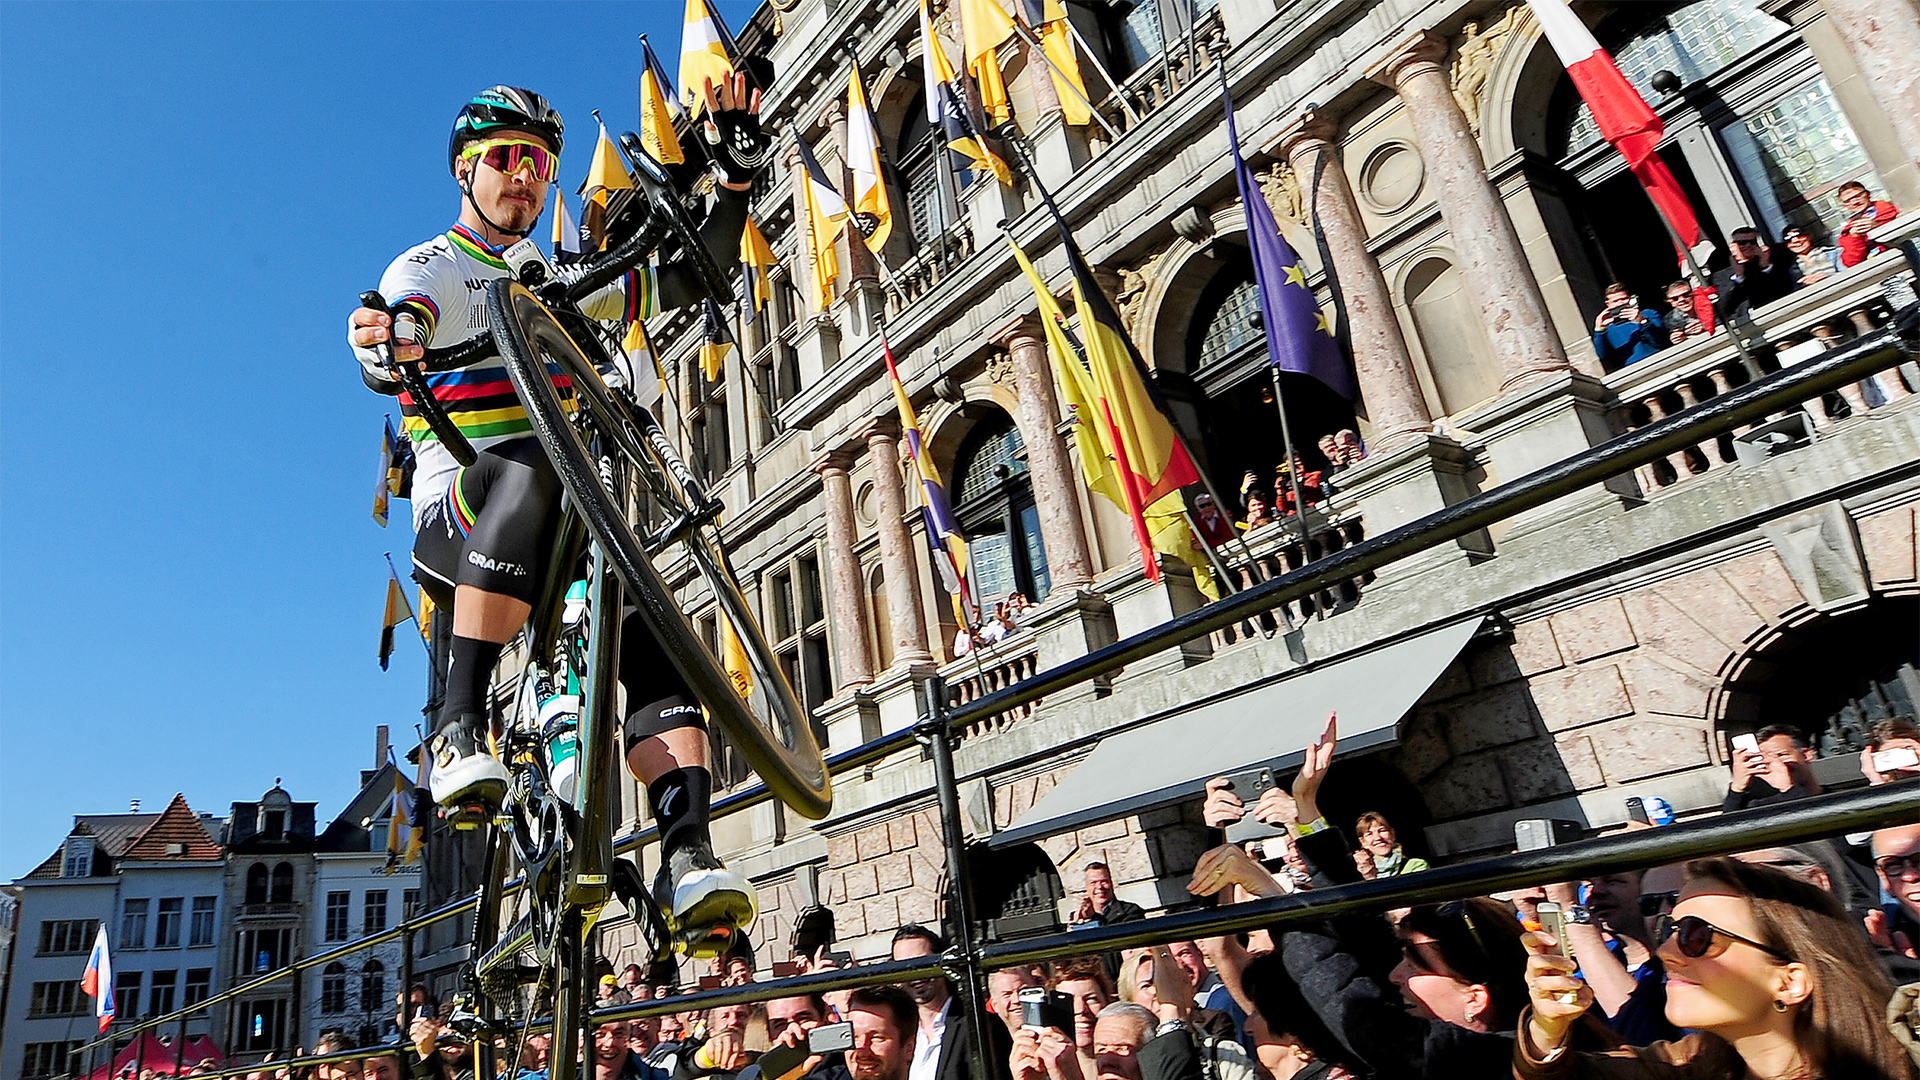 Peter Sagan – the unconventional cycling legend